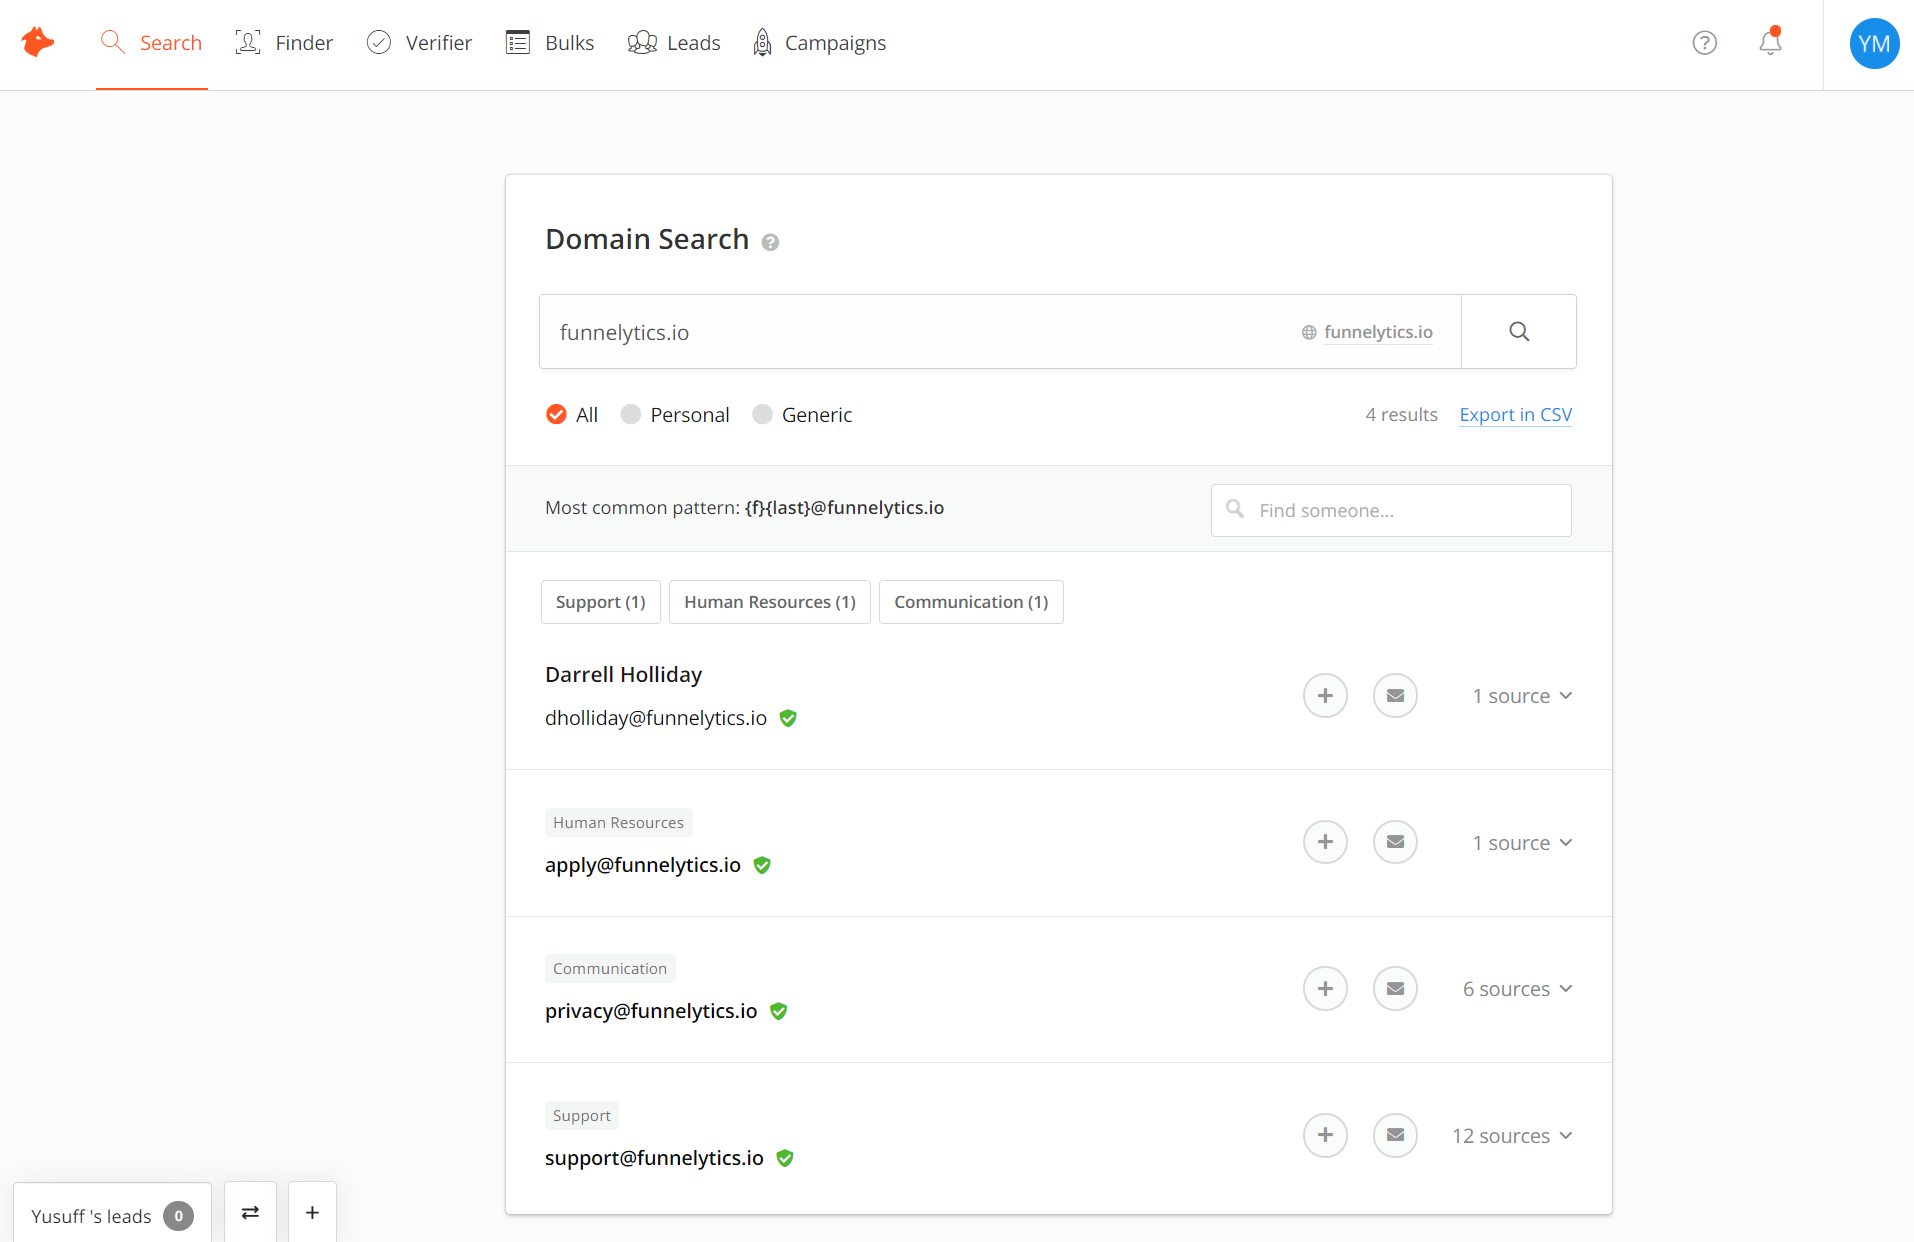 Hunter.io - Email Search Results